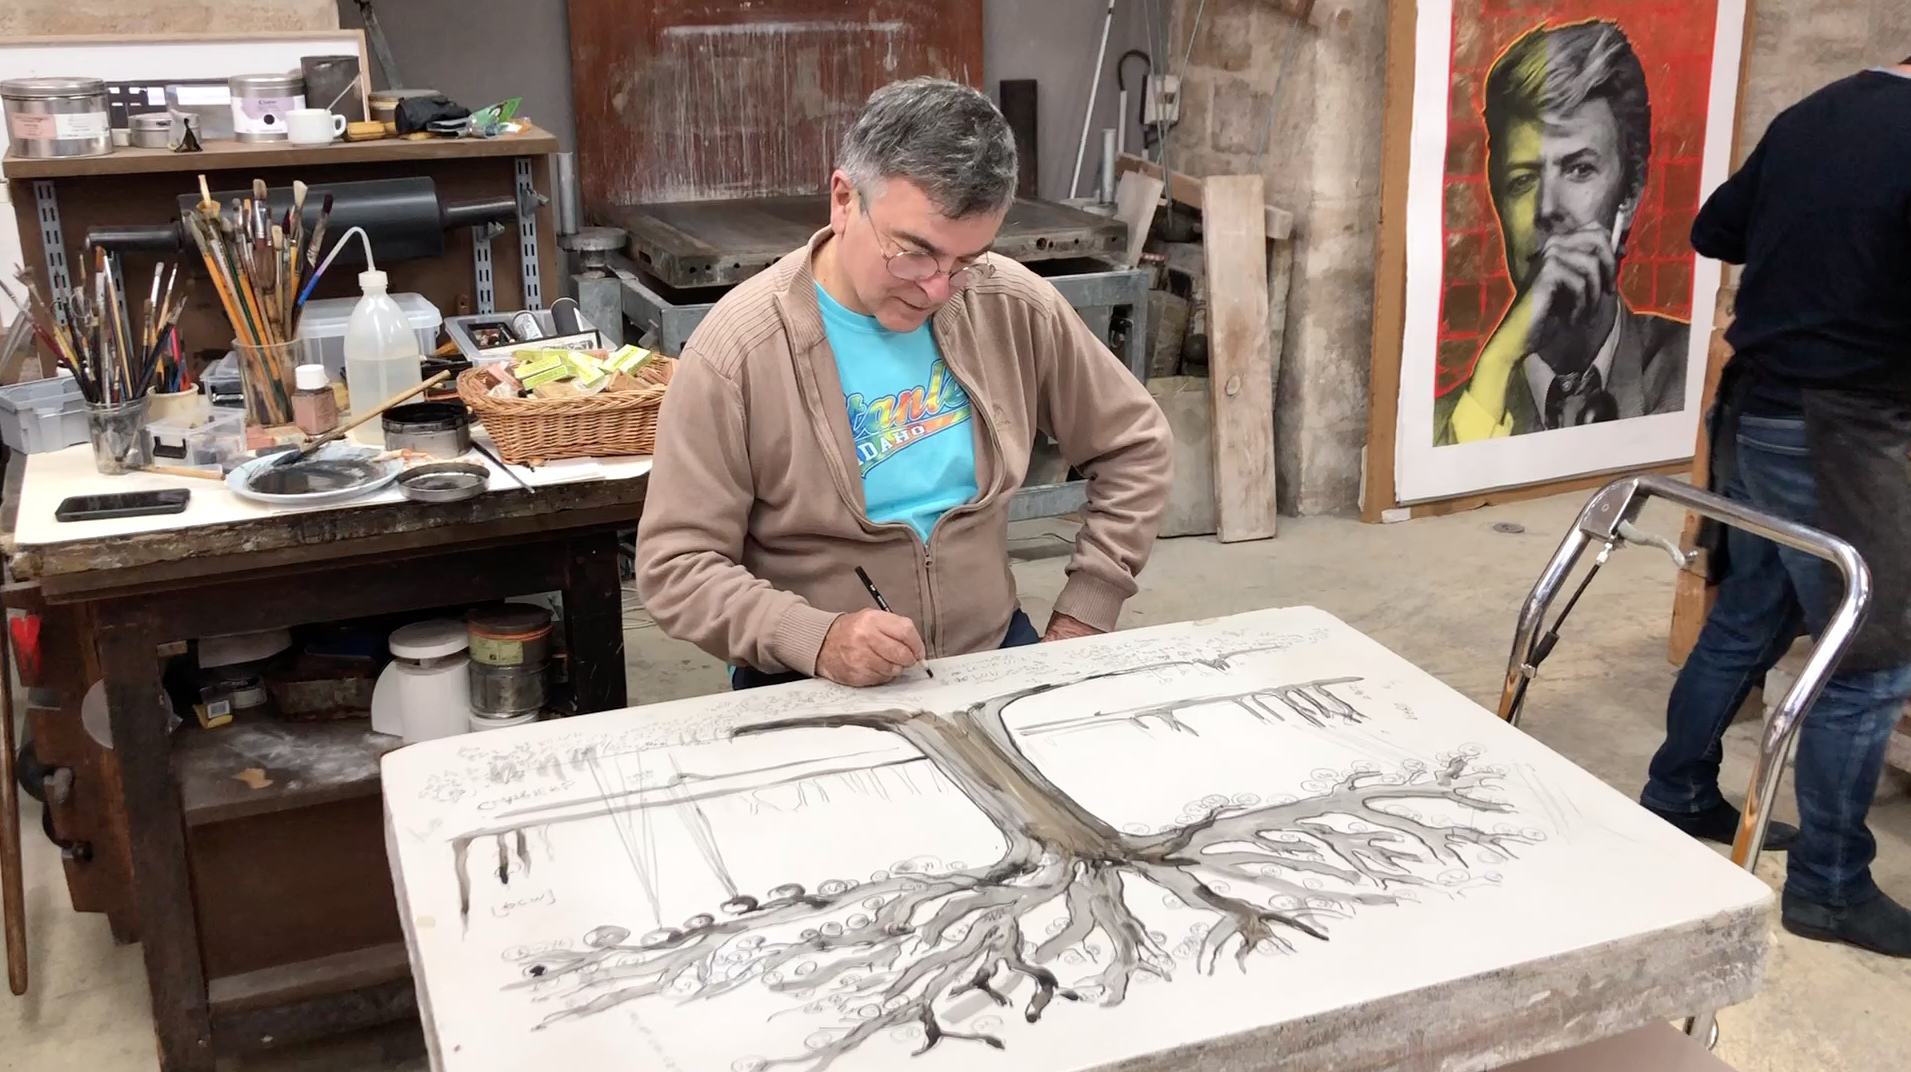 Video - 18 novembre 2019,  Fabrice Hyber commence sa lithographie